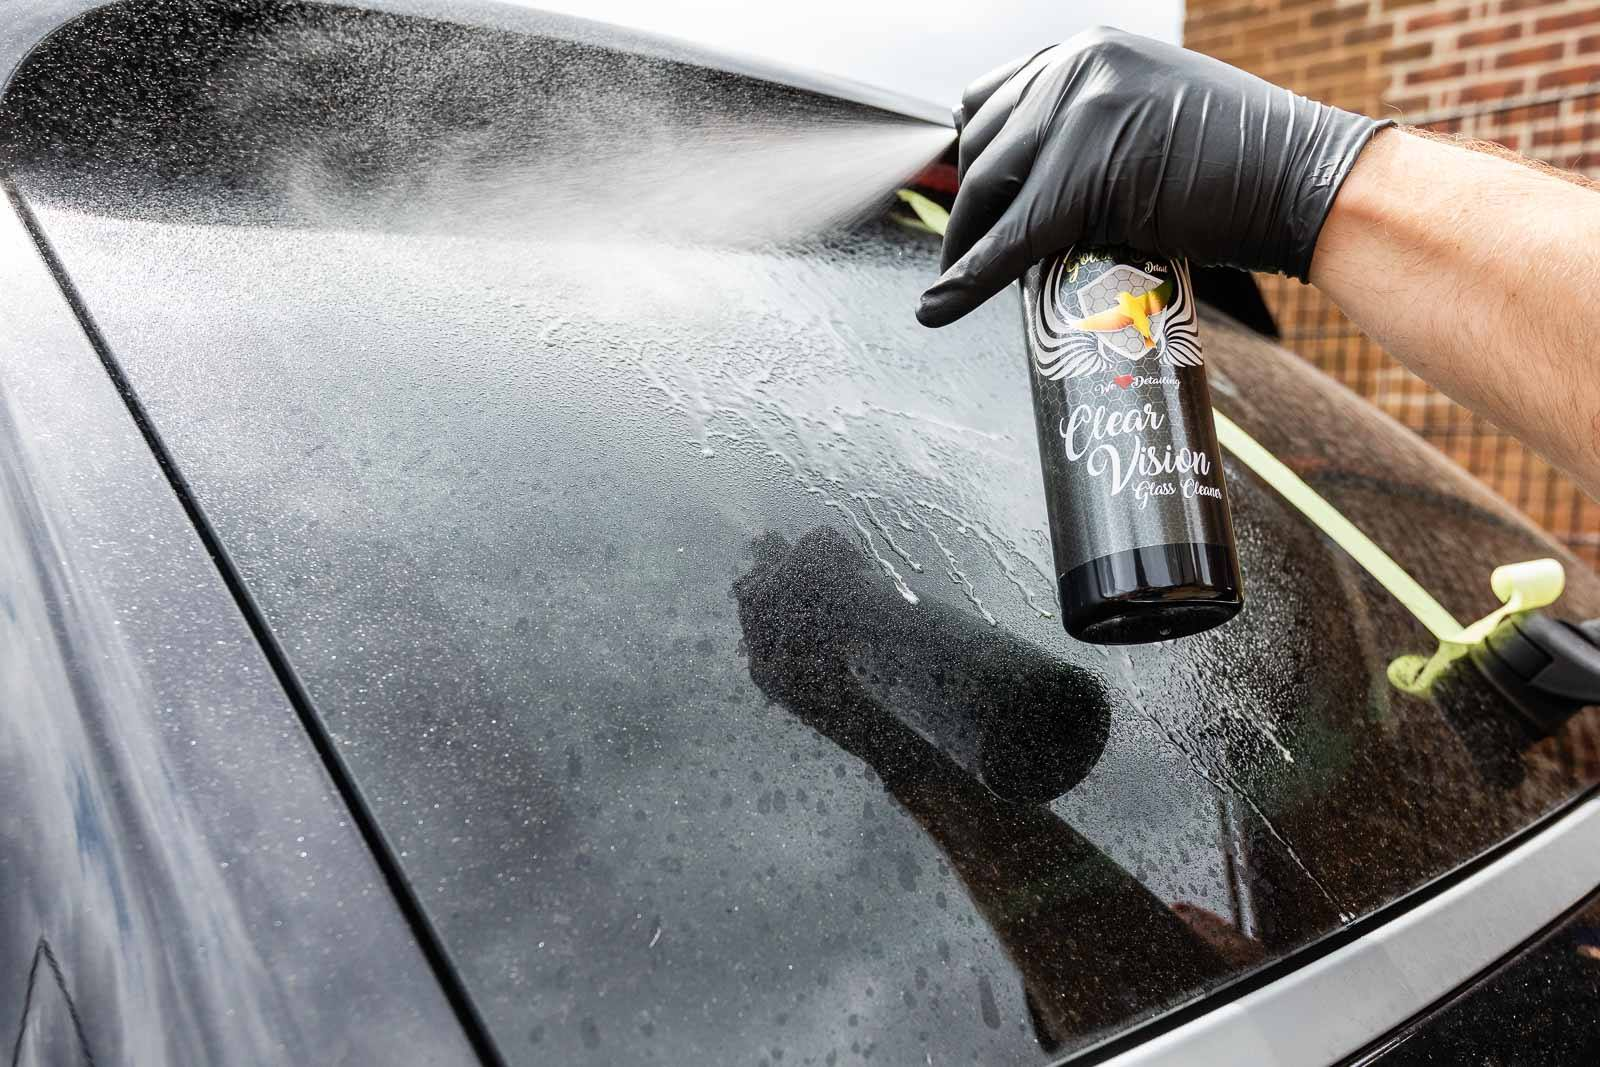 Clear Vision Glass Cleaner by Golden Bird Detail